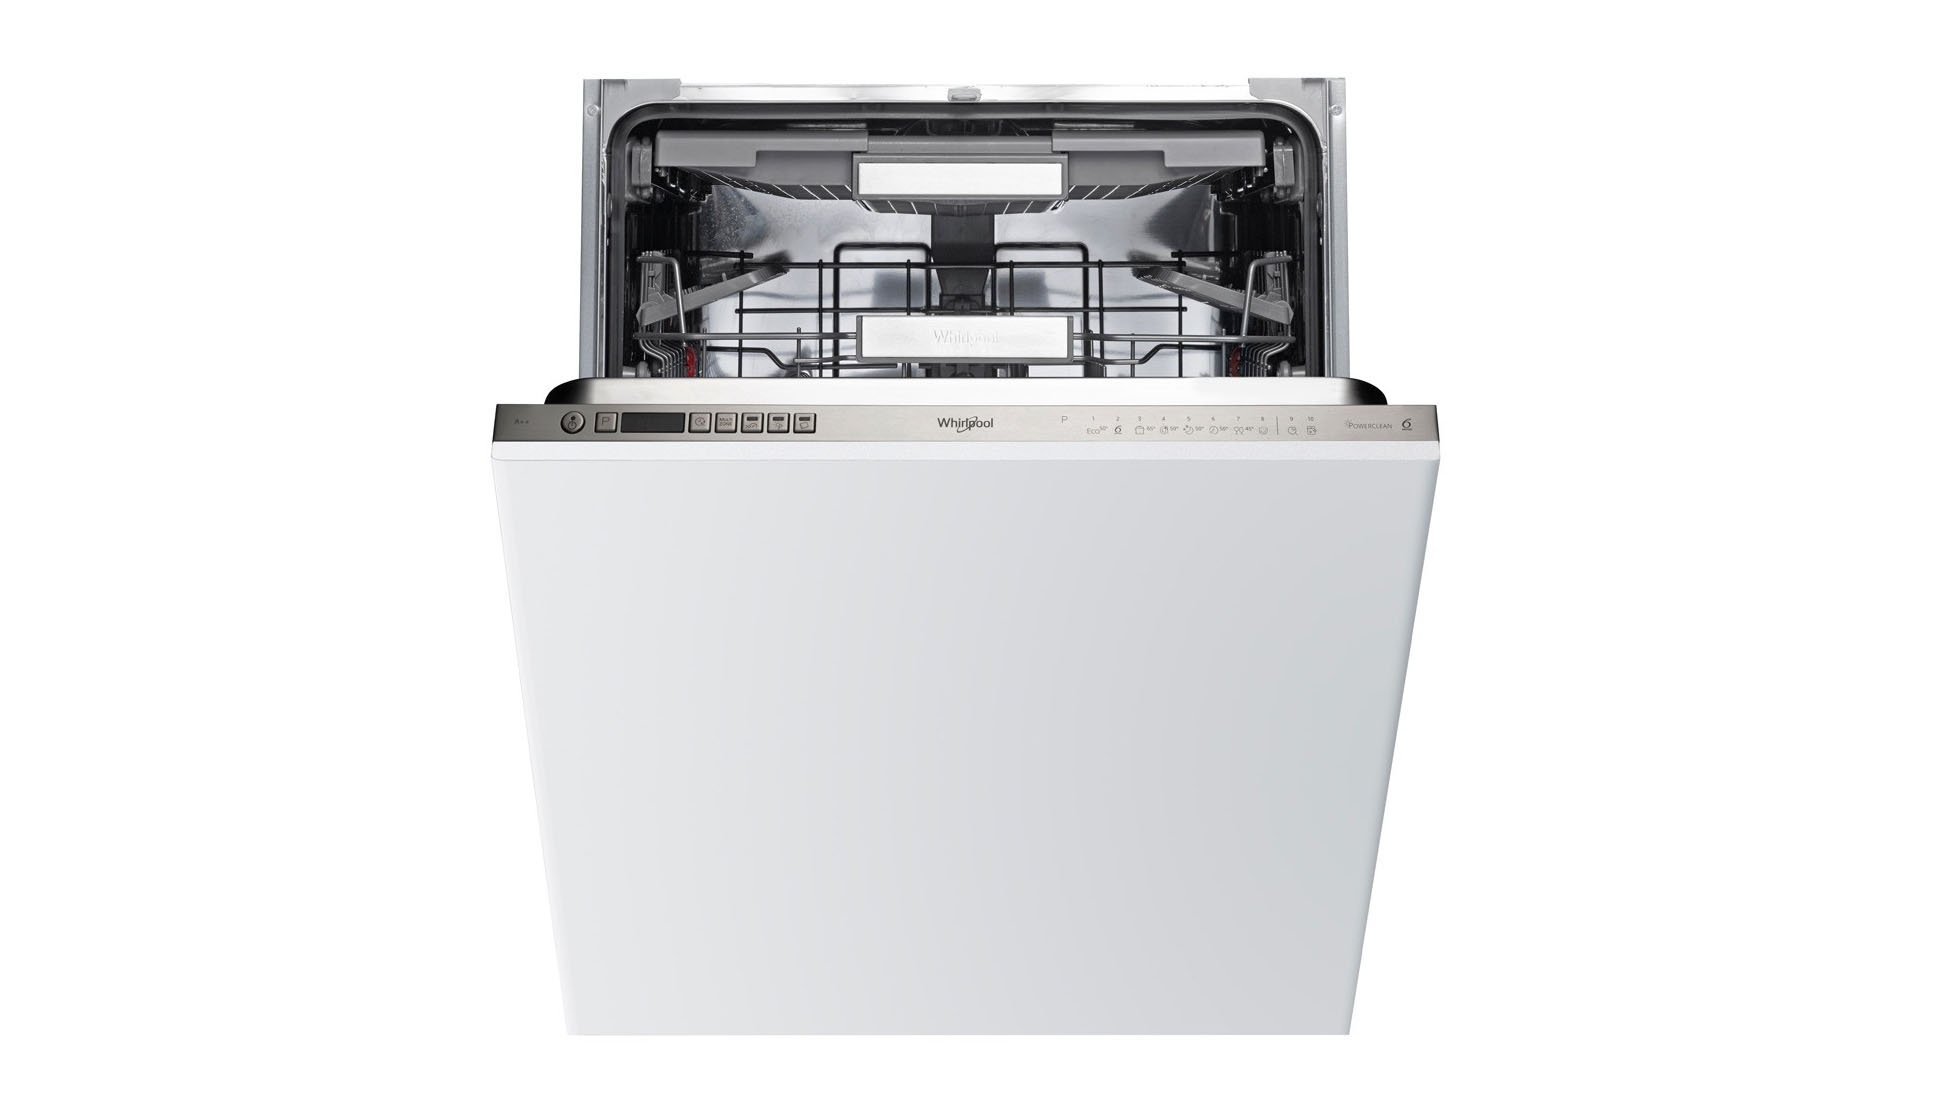 Best integrated dishwasher 2018: The best dishwashers to fit into ...